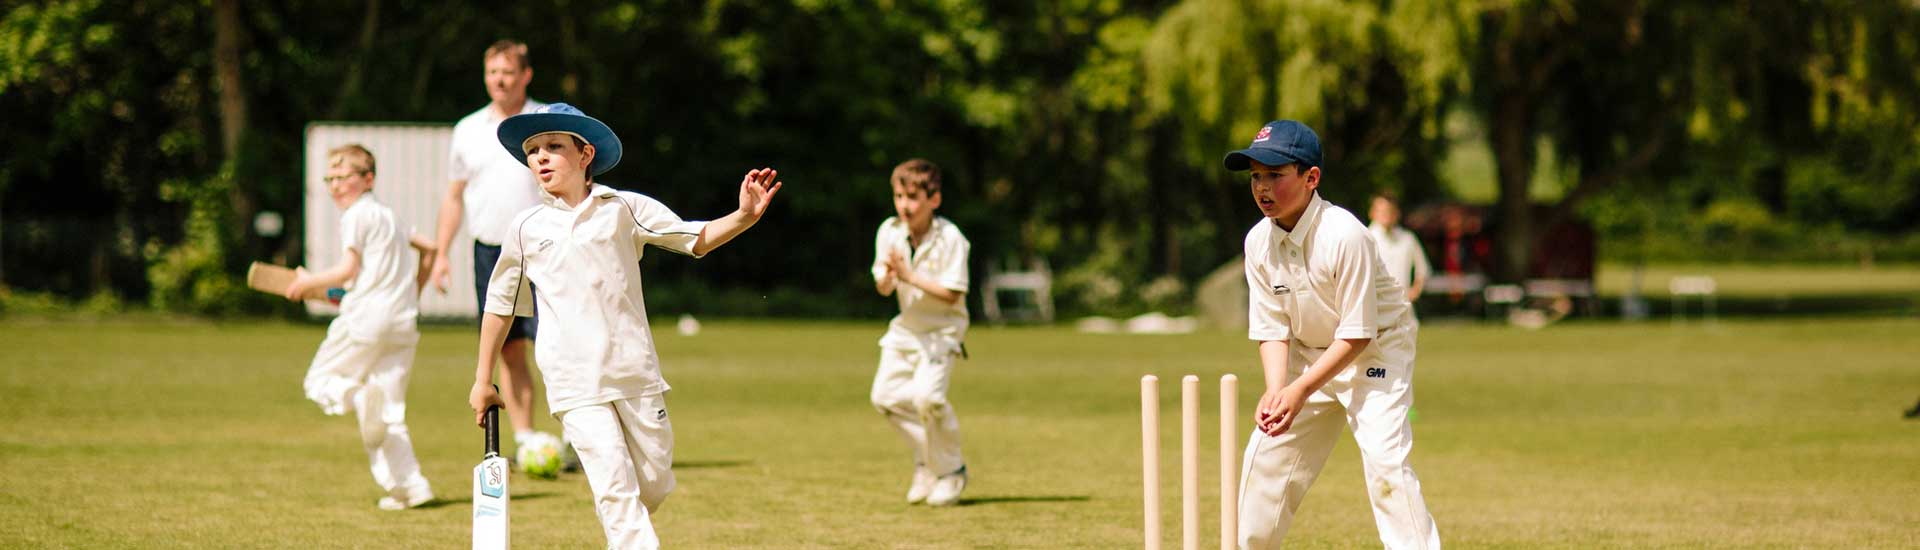 Mill Hill School - Cricket